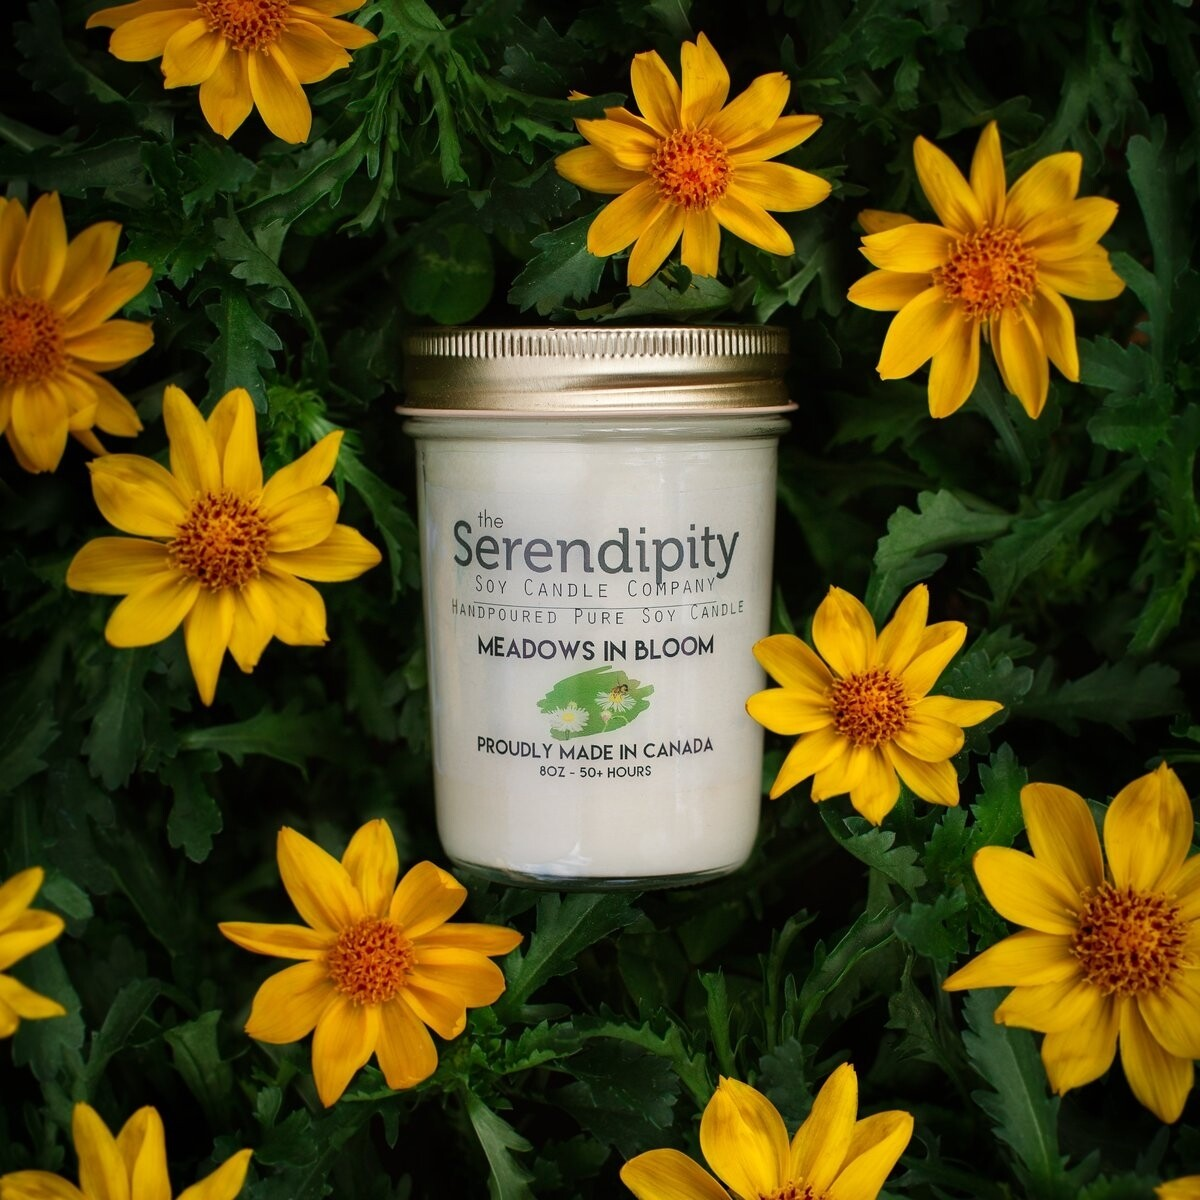 Serendipity 8 oz Soy Candle Jar | Meadows in Bloom